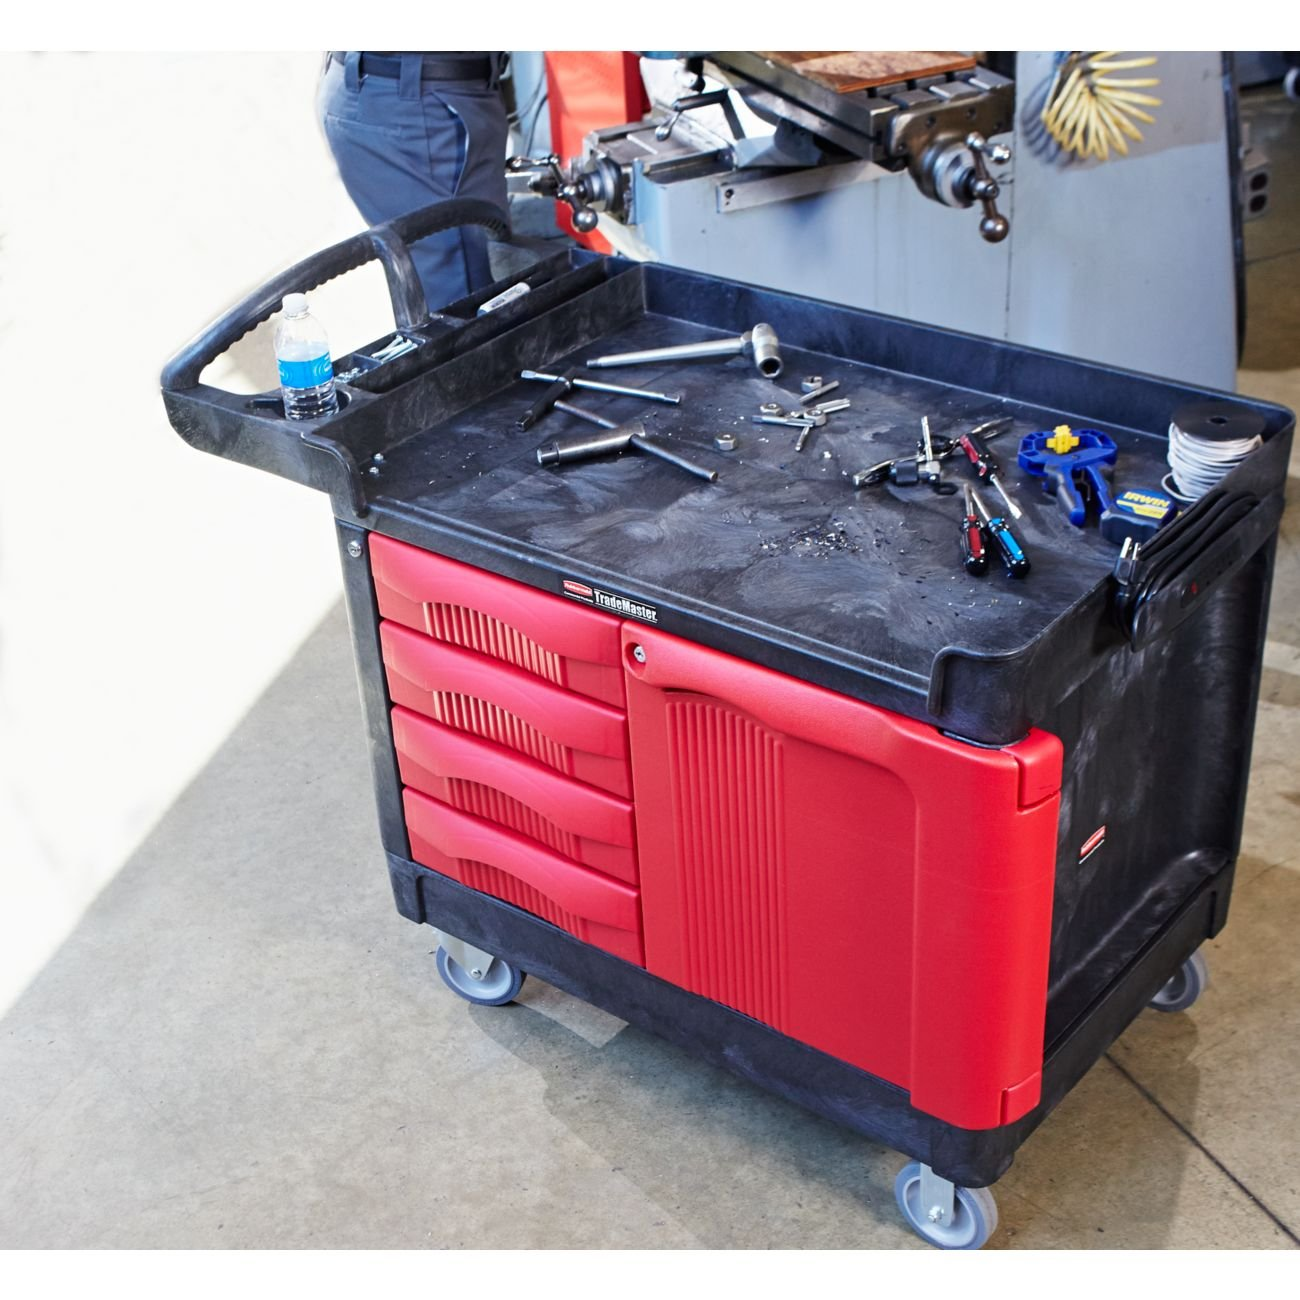 49 L x 27 W x 28 H Rubbermaid Commercial Trademaster 4 Drawer Mobile Work Center with Cabinet FG453388BLA Black//Red